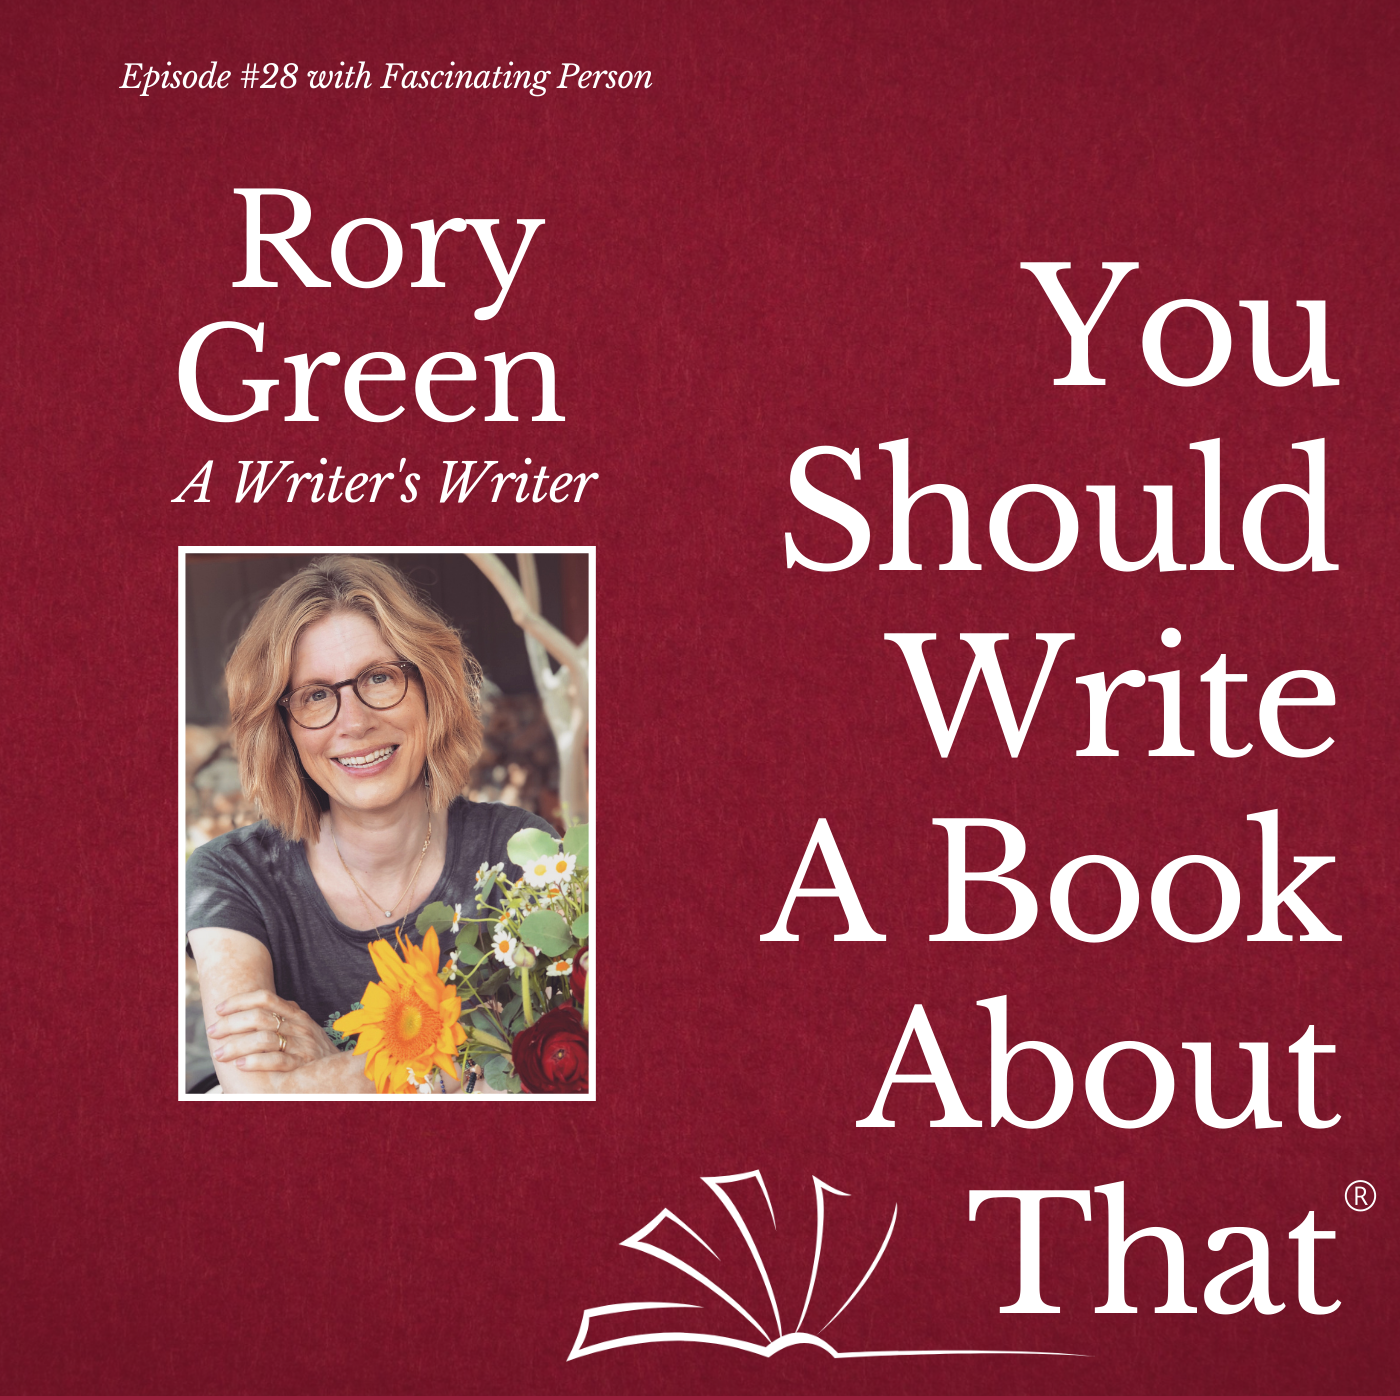 Rory Green - A Writer's Writer